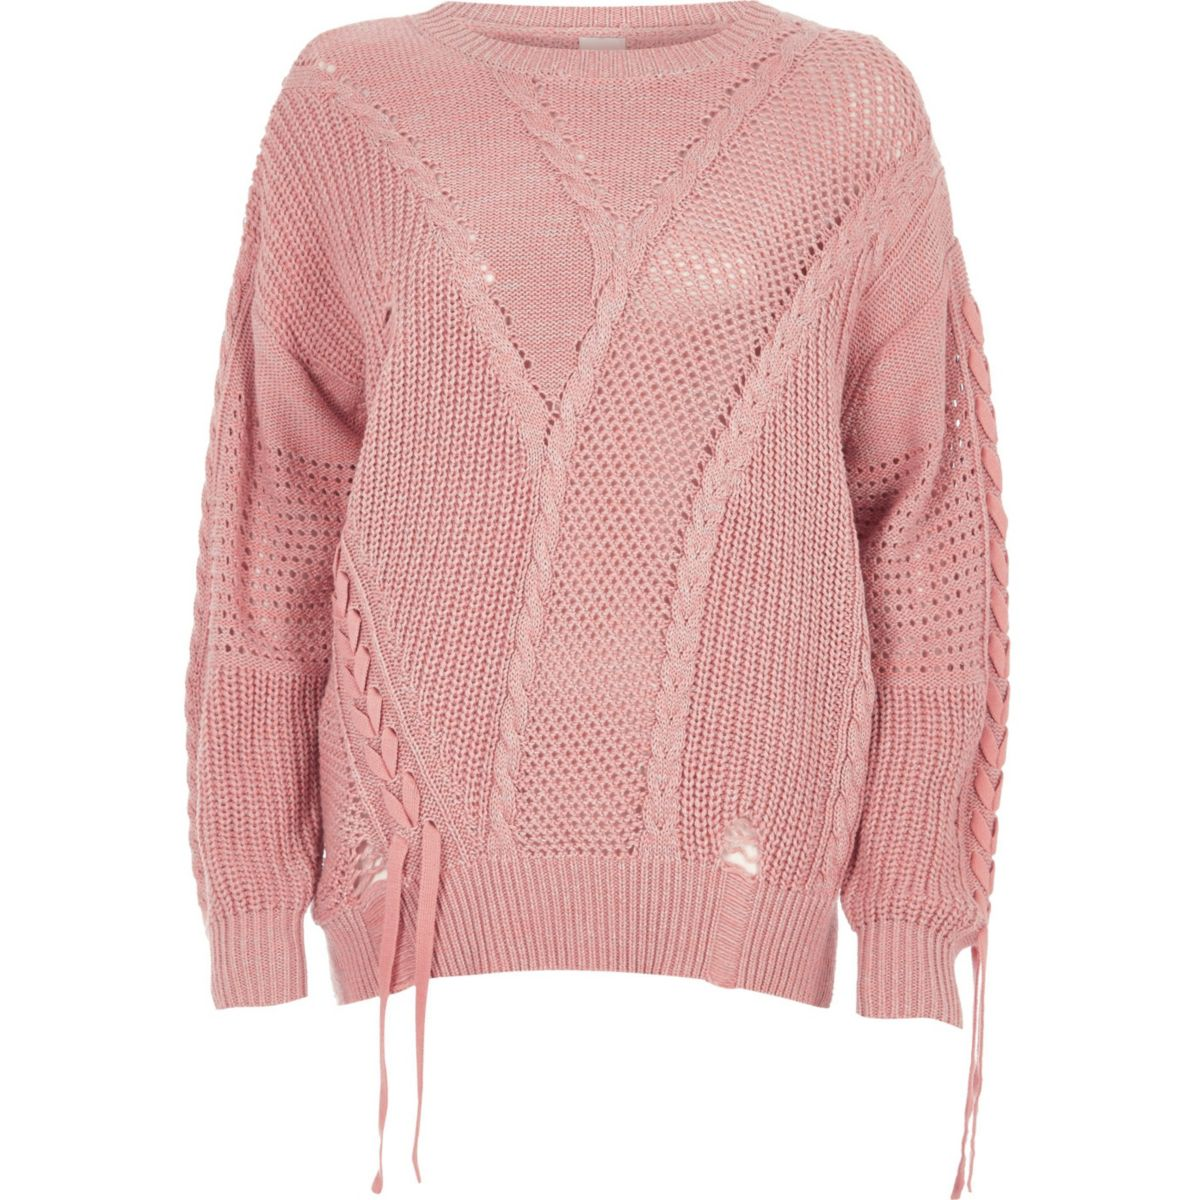 Light pink ladder knitted tie detail sweater